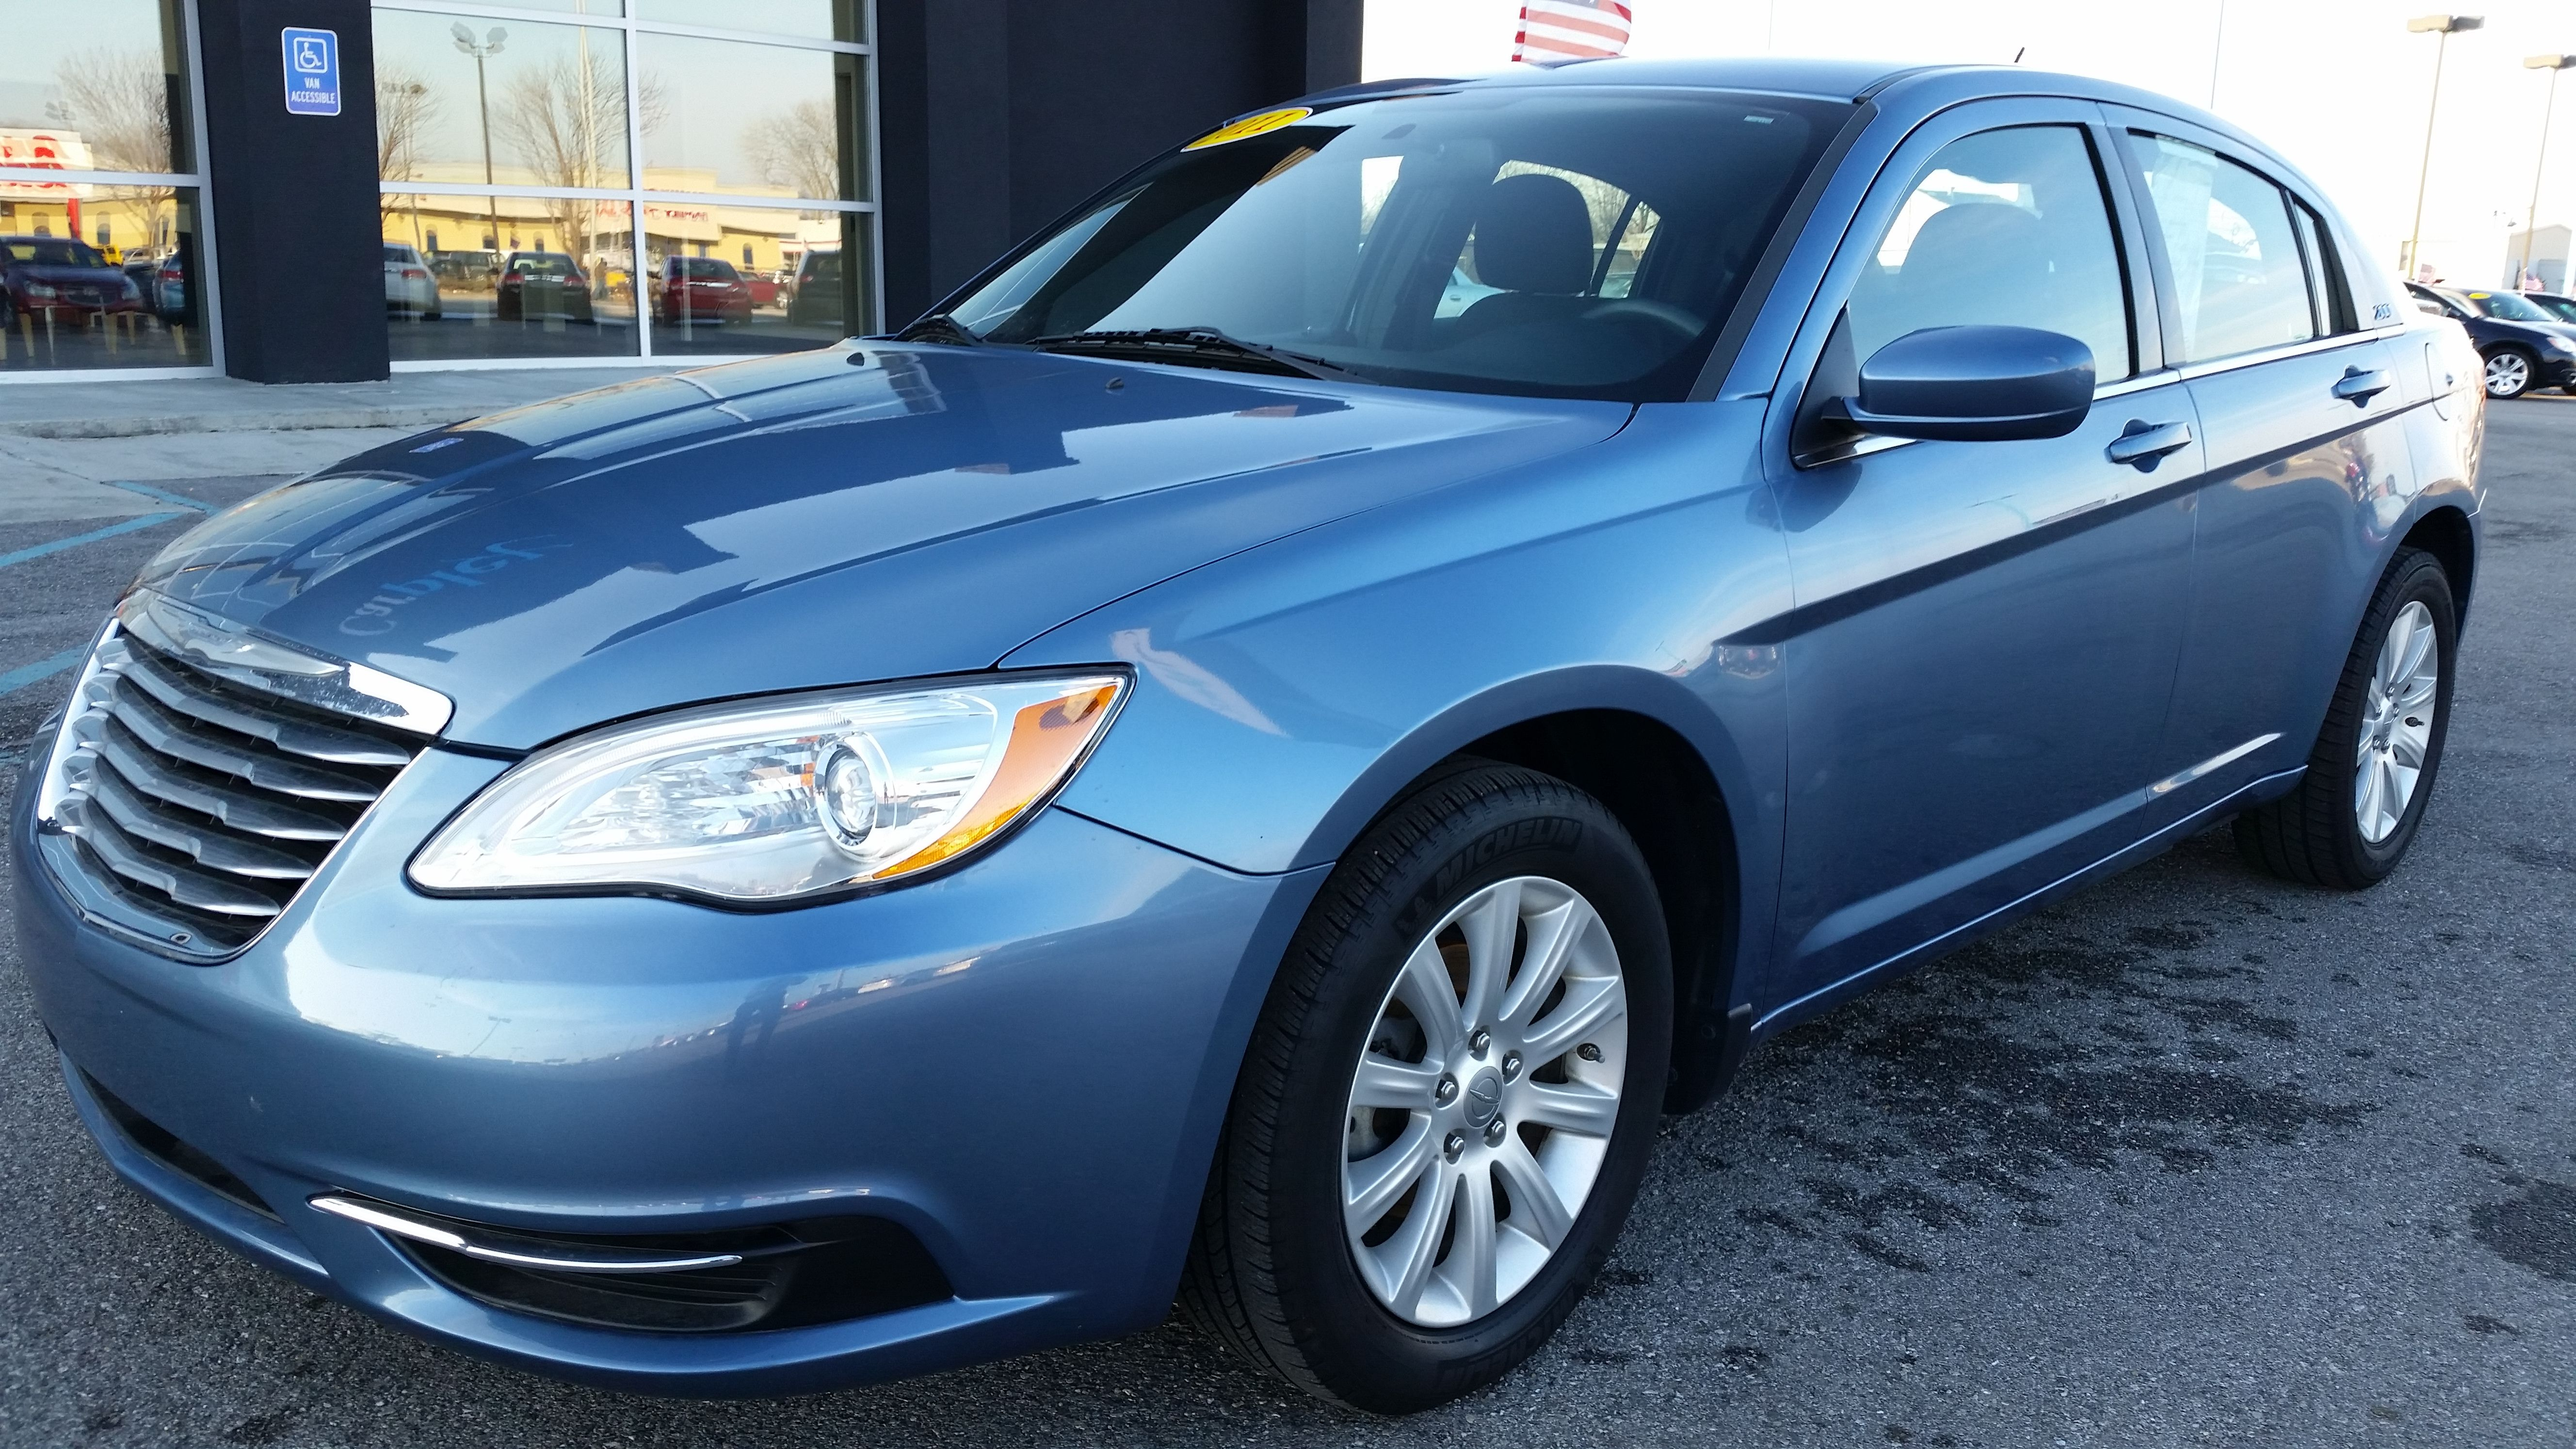 Used 2011 Chrysler 200 For Sale Indianapolis, IN Call